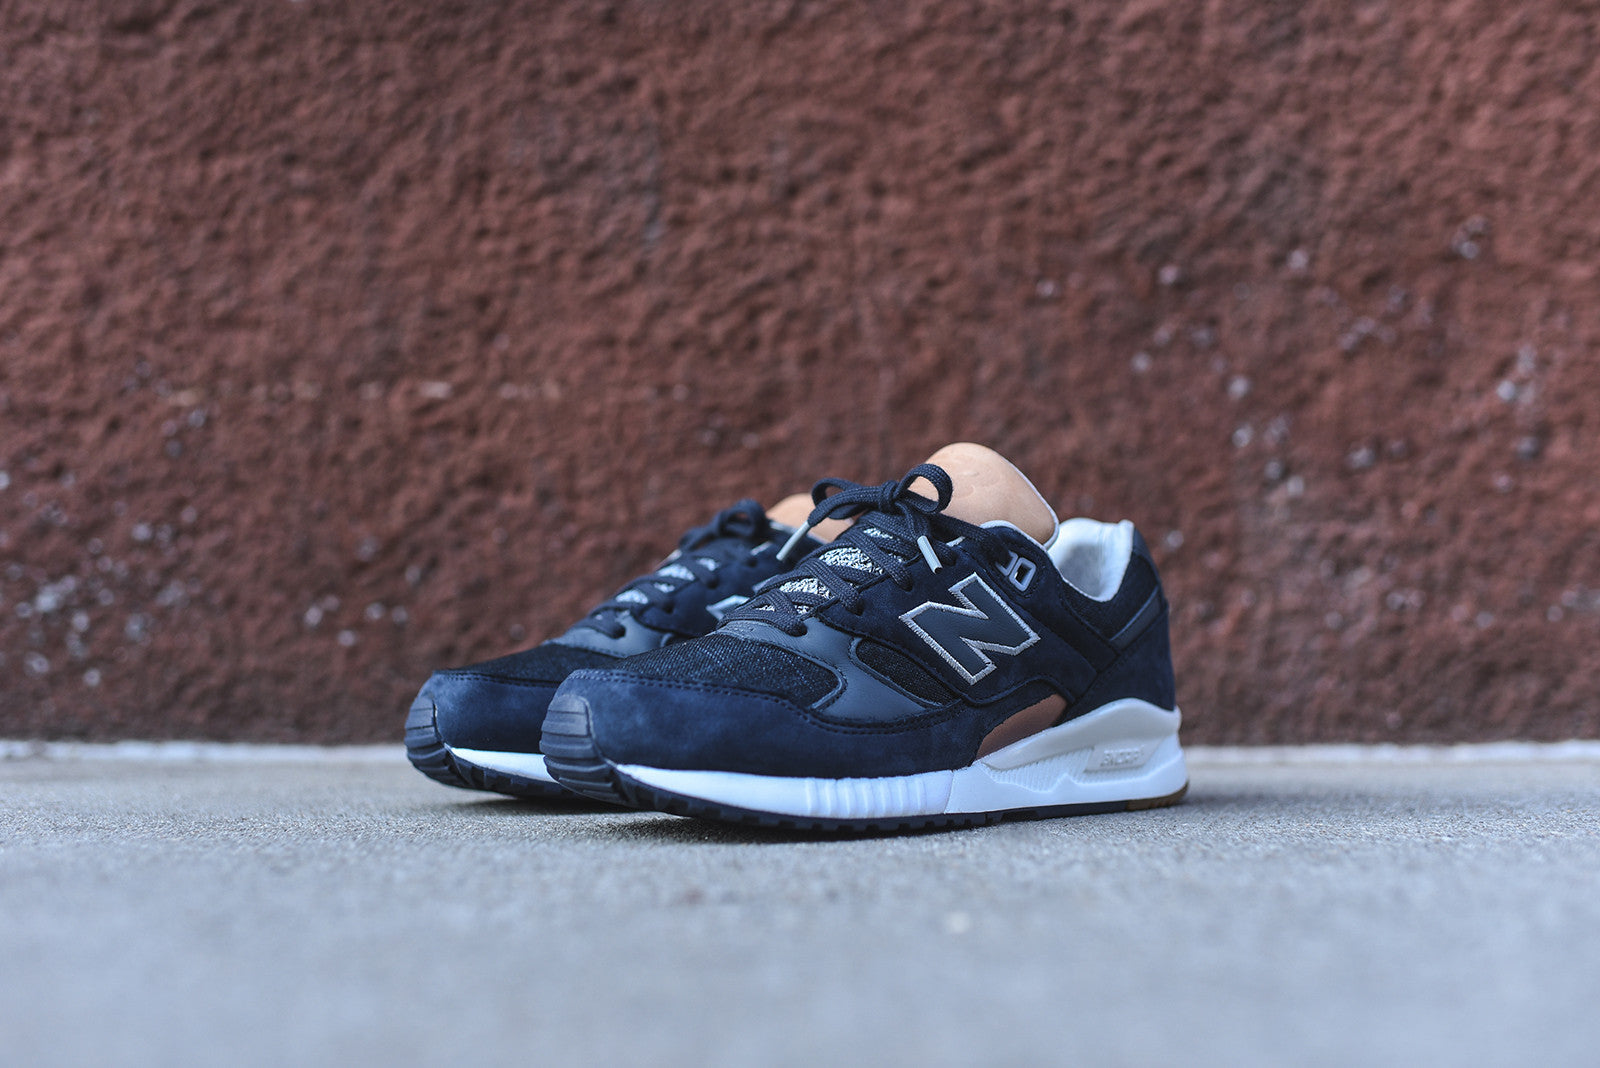 New Balance WMNS 530 - Outerspace Navy / Thunder